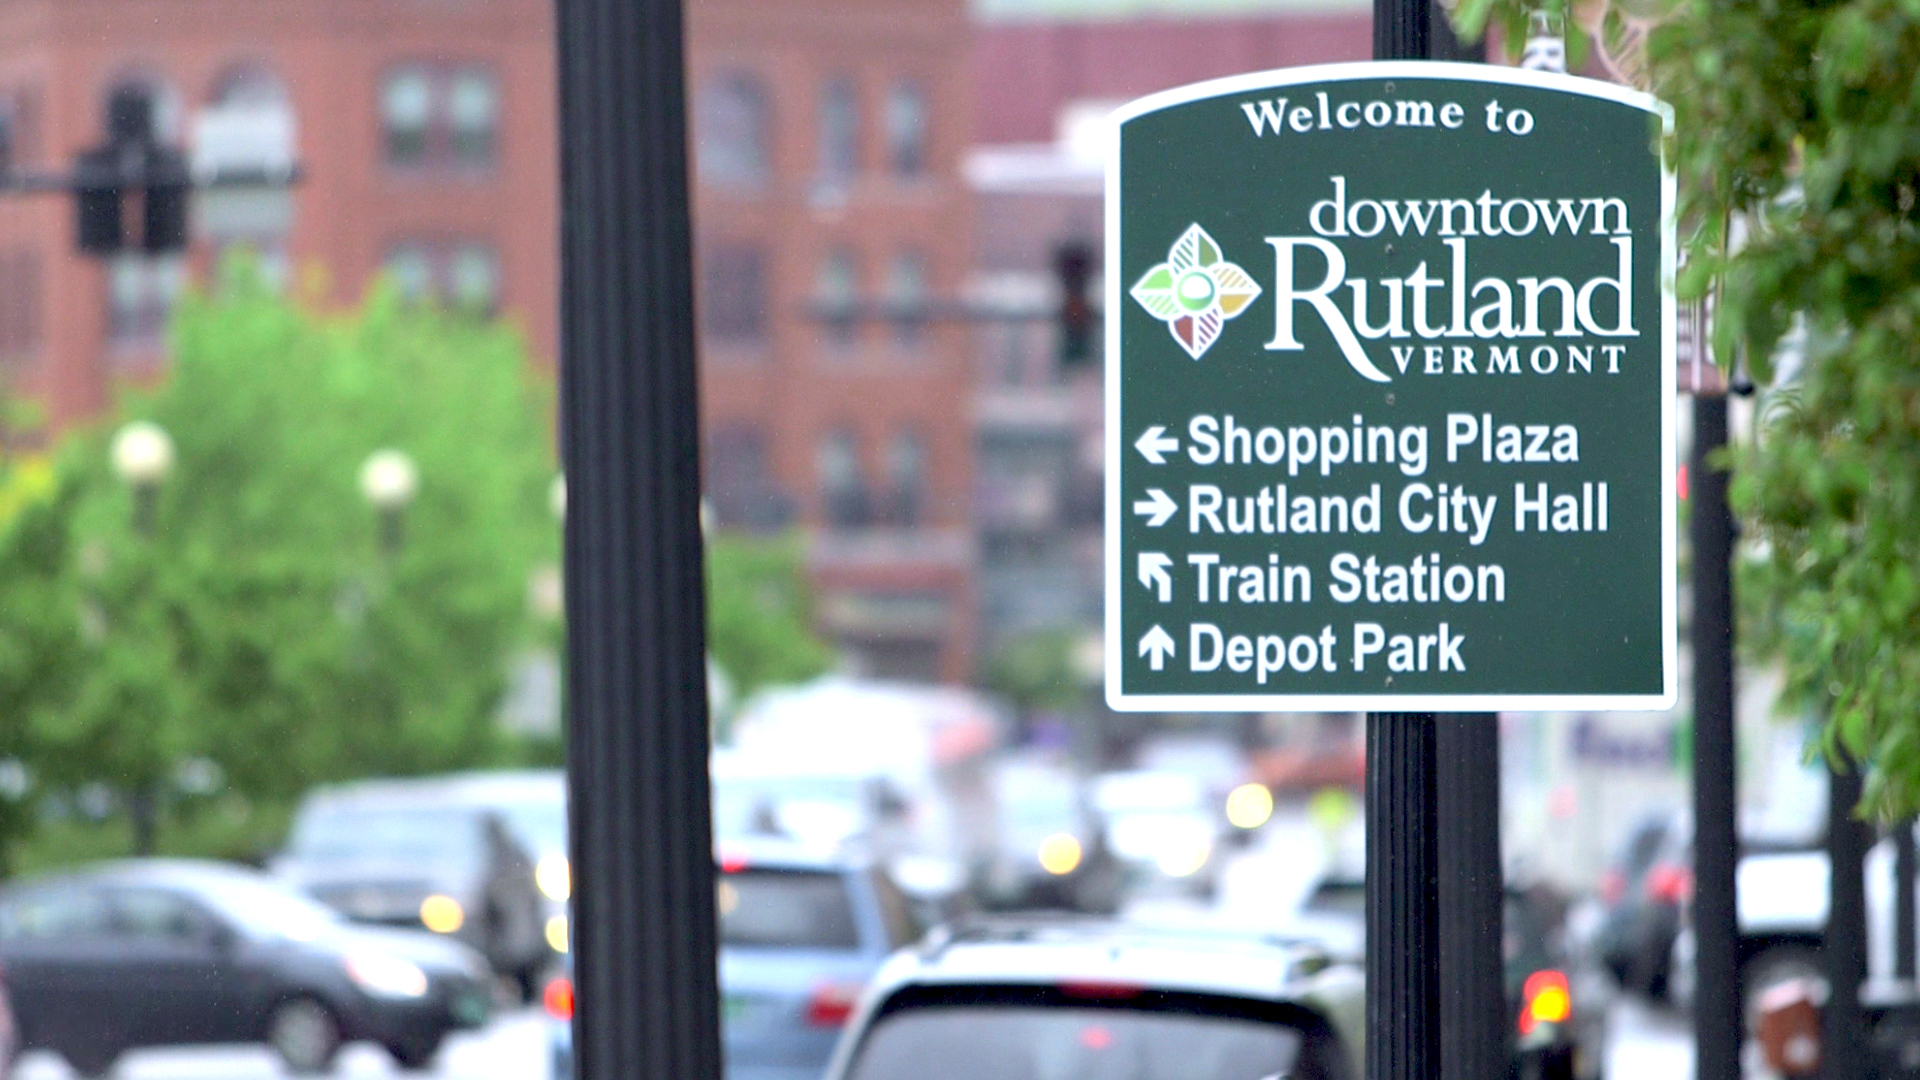 A locator sign in downtown Rutland, Vermont directing people toward the shopping plaza, city hall, train station, and Depot Park.